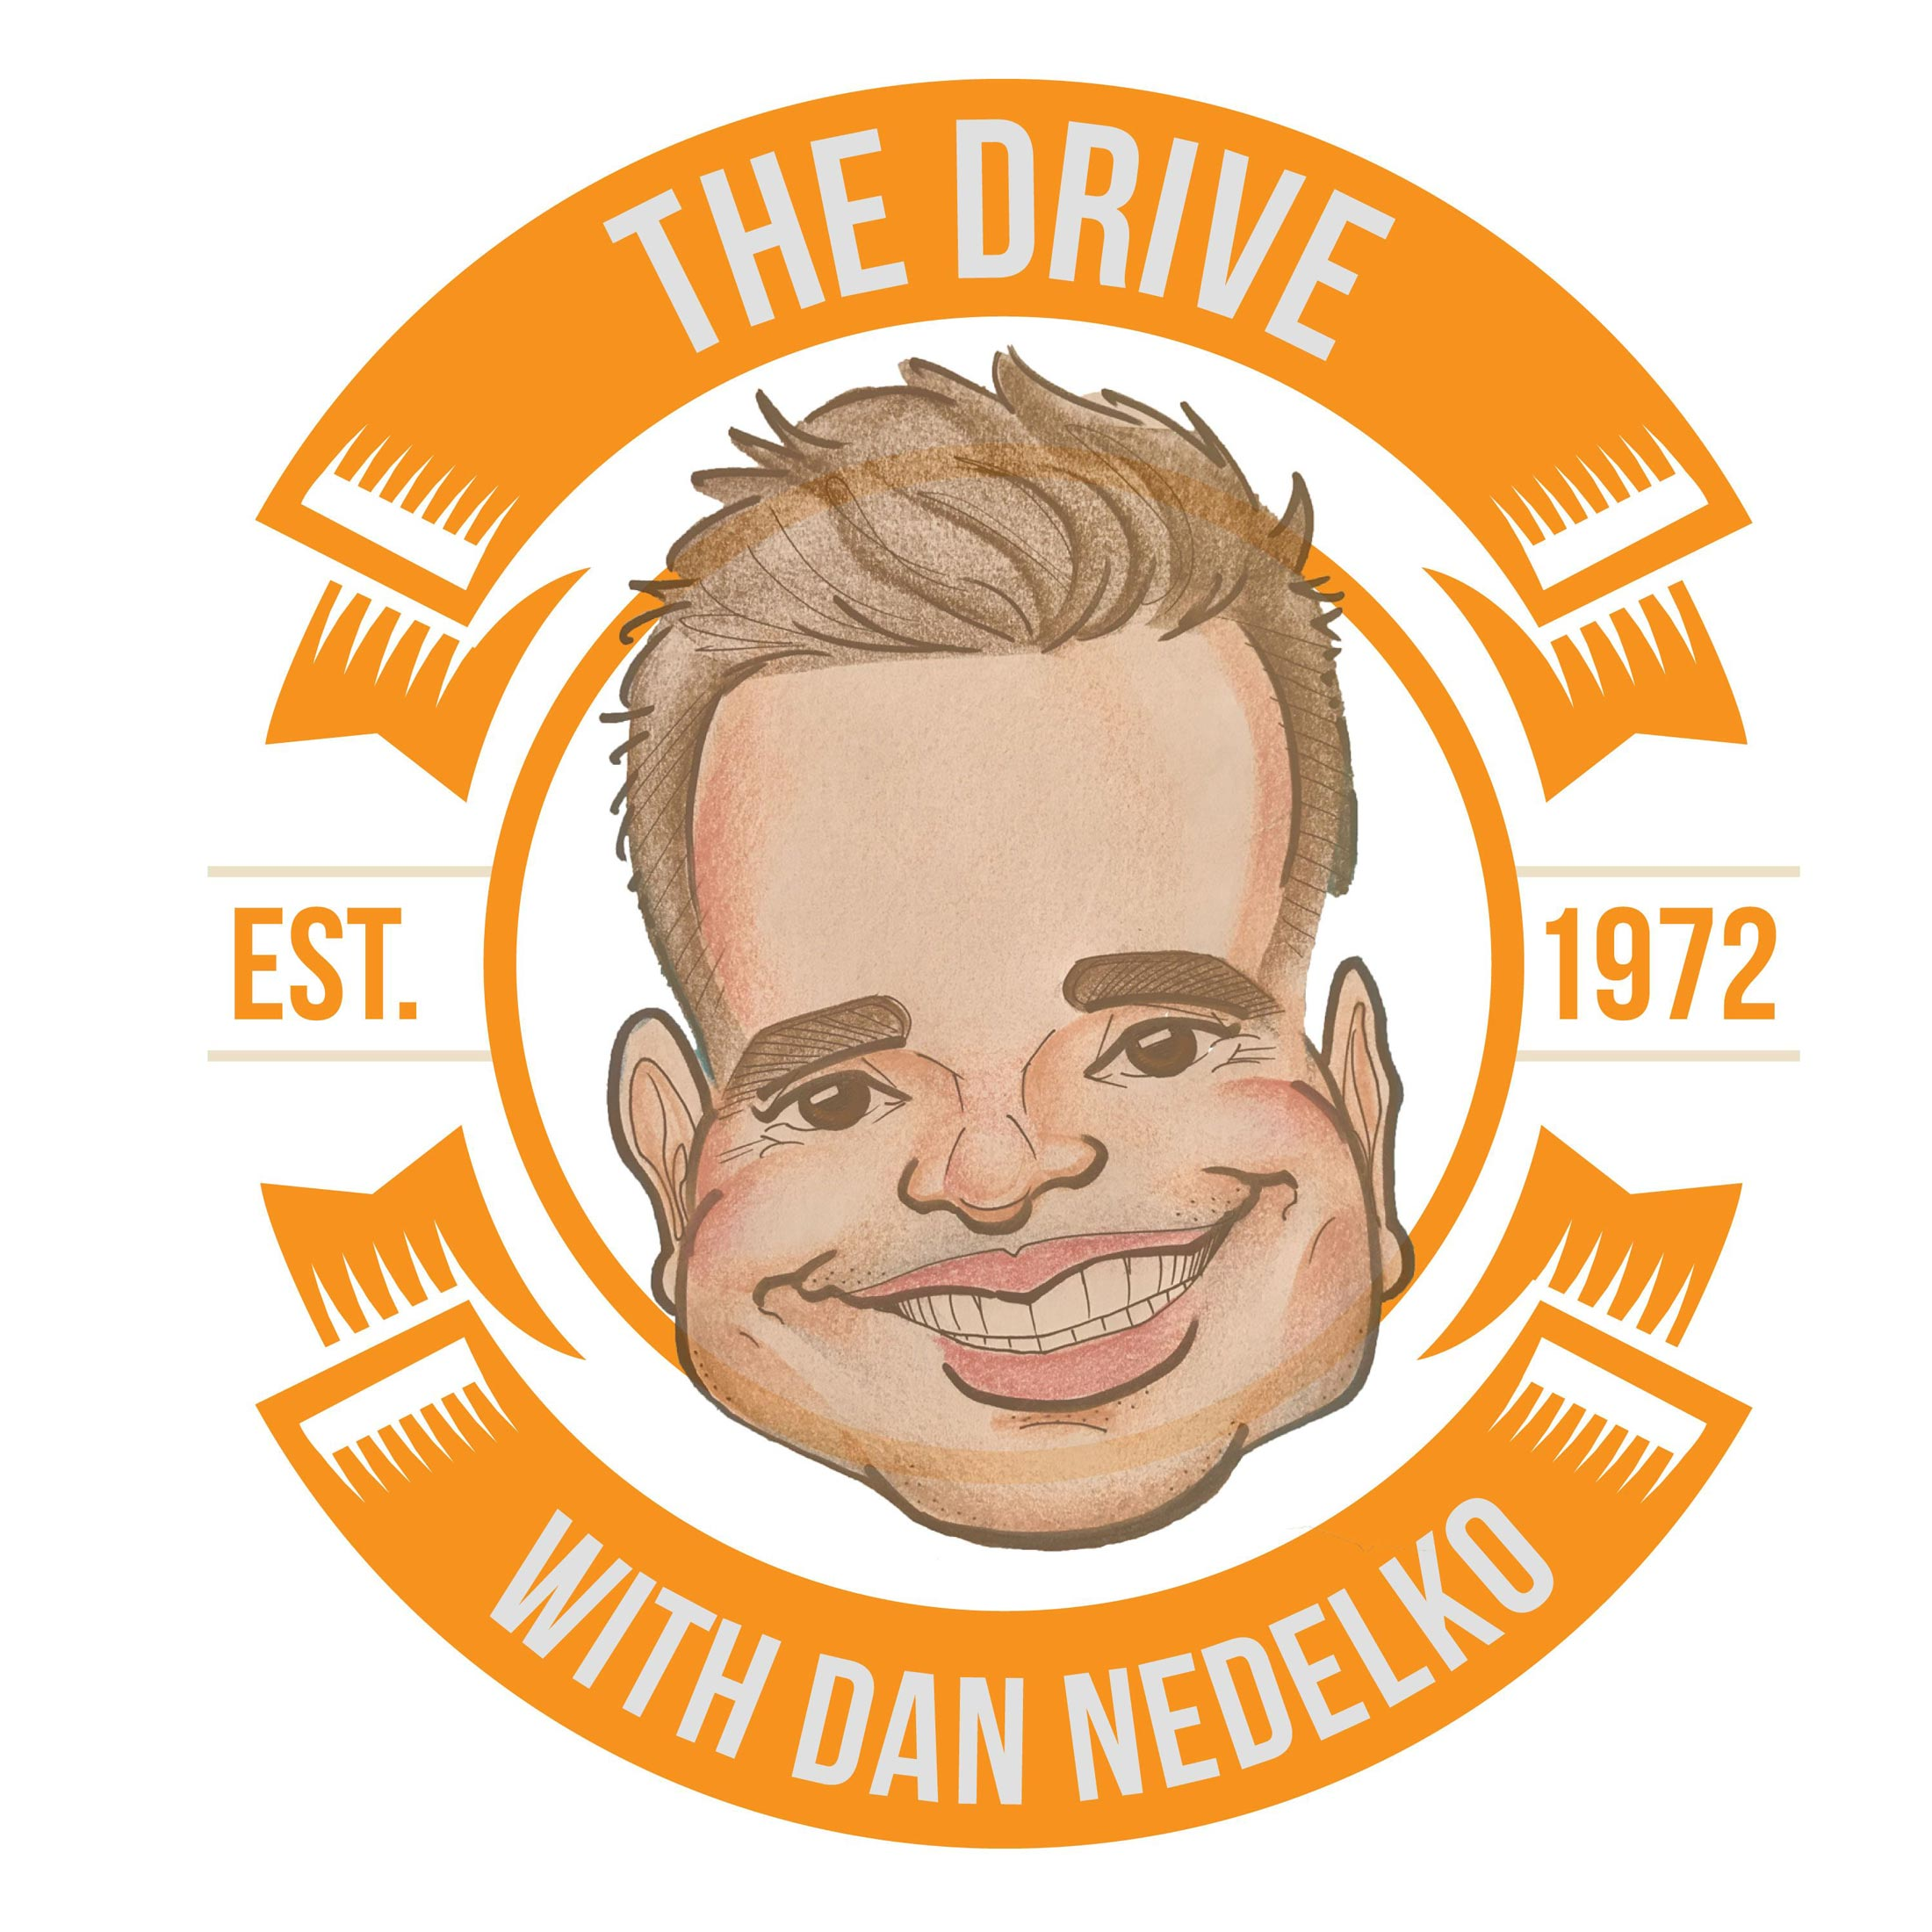 Marketing Drive with Dan Nedelko